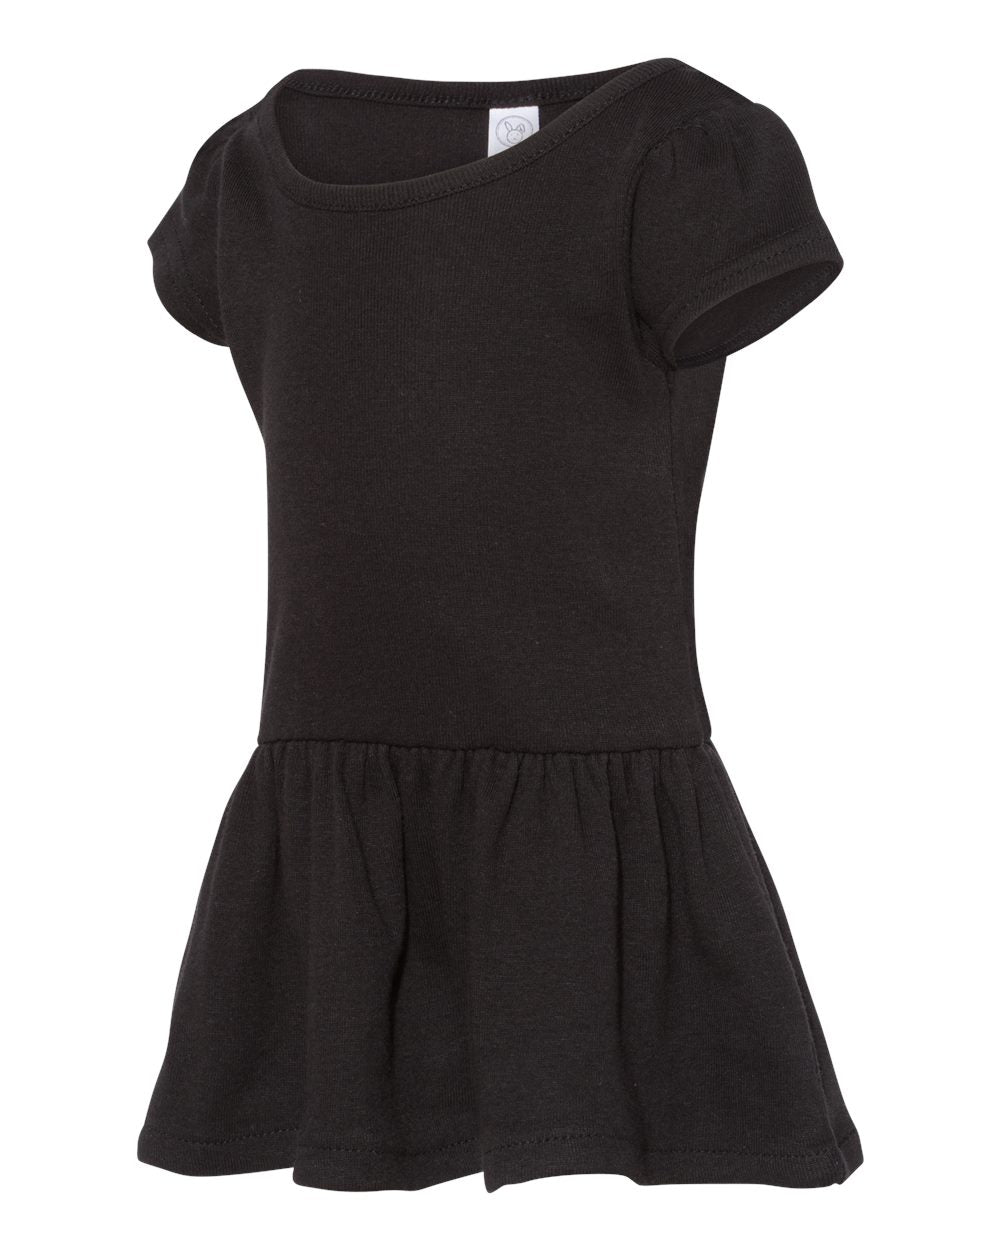 Rabbit Skins Toddler Dress 5323 Black